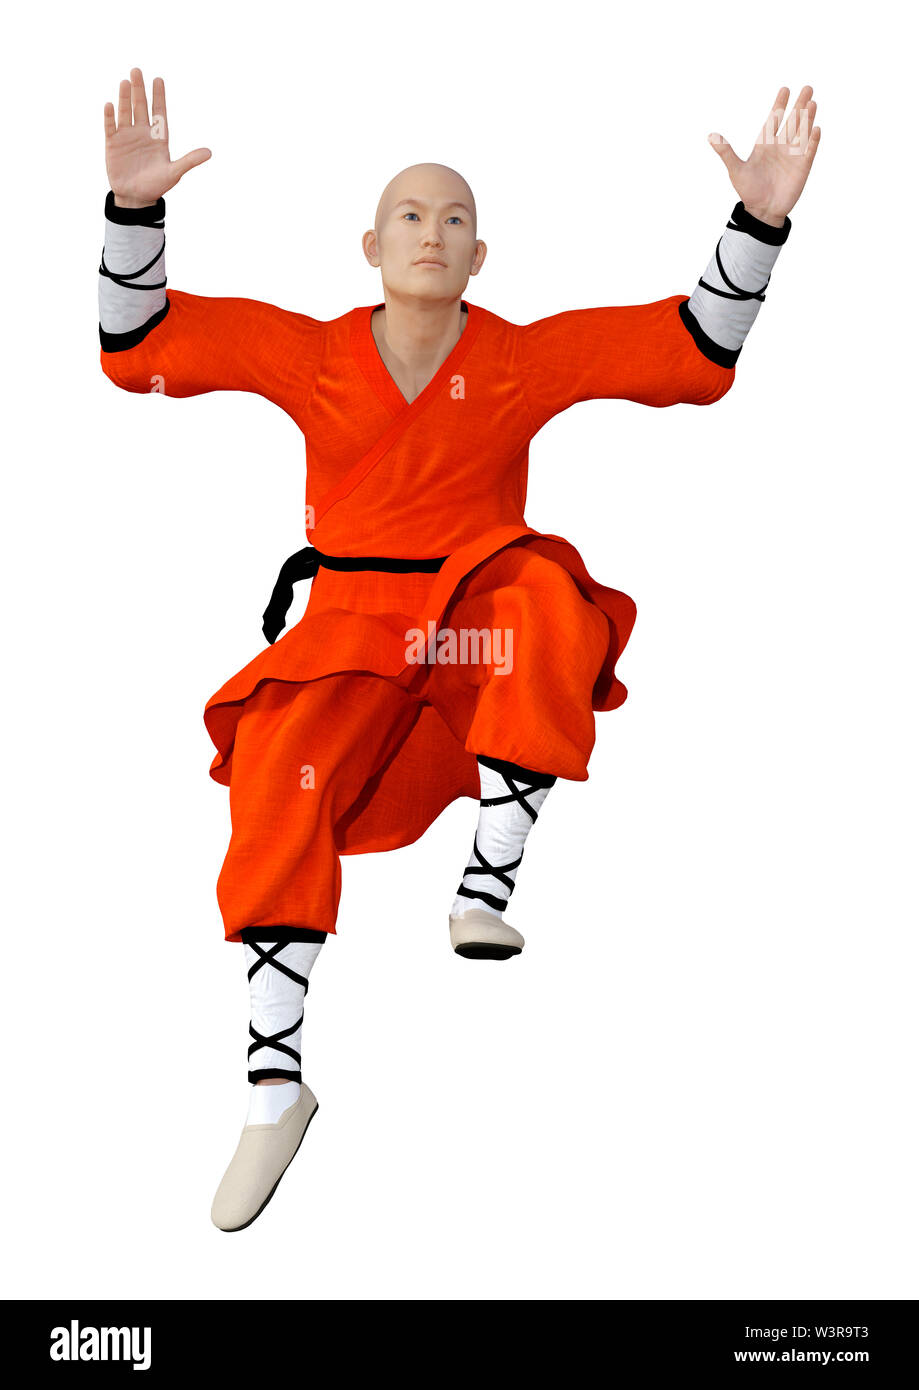 3D rendering of a shaolin monk exercising isolated on white background - Stock Image